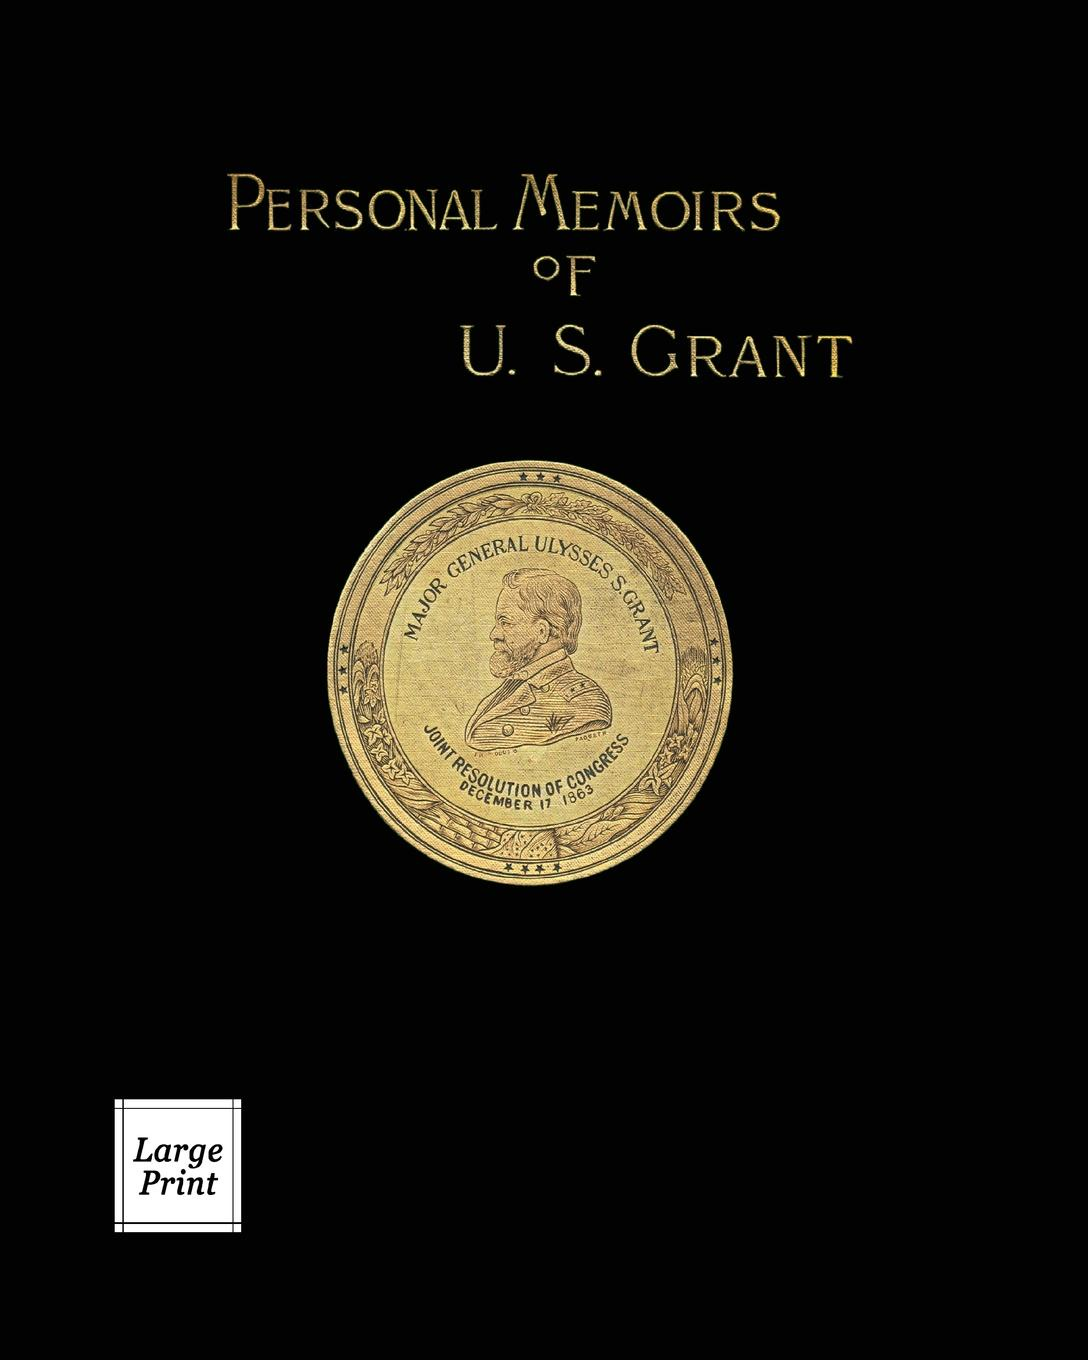 Ulysses S. Grant Personal Memoirs of U. S. Grant Volume 2/2. Large Print Edition arthur hastings grant the american city volume 1